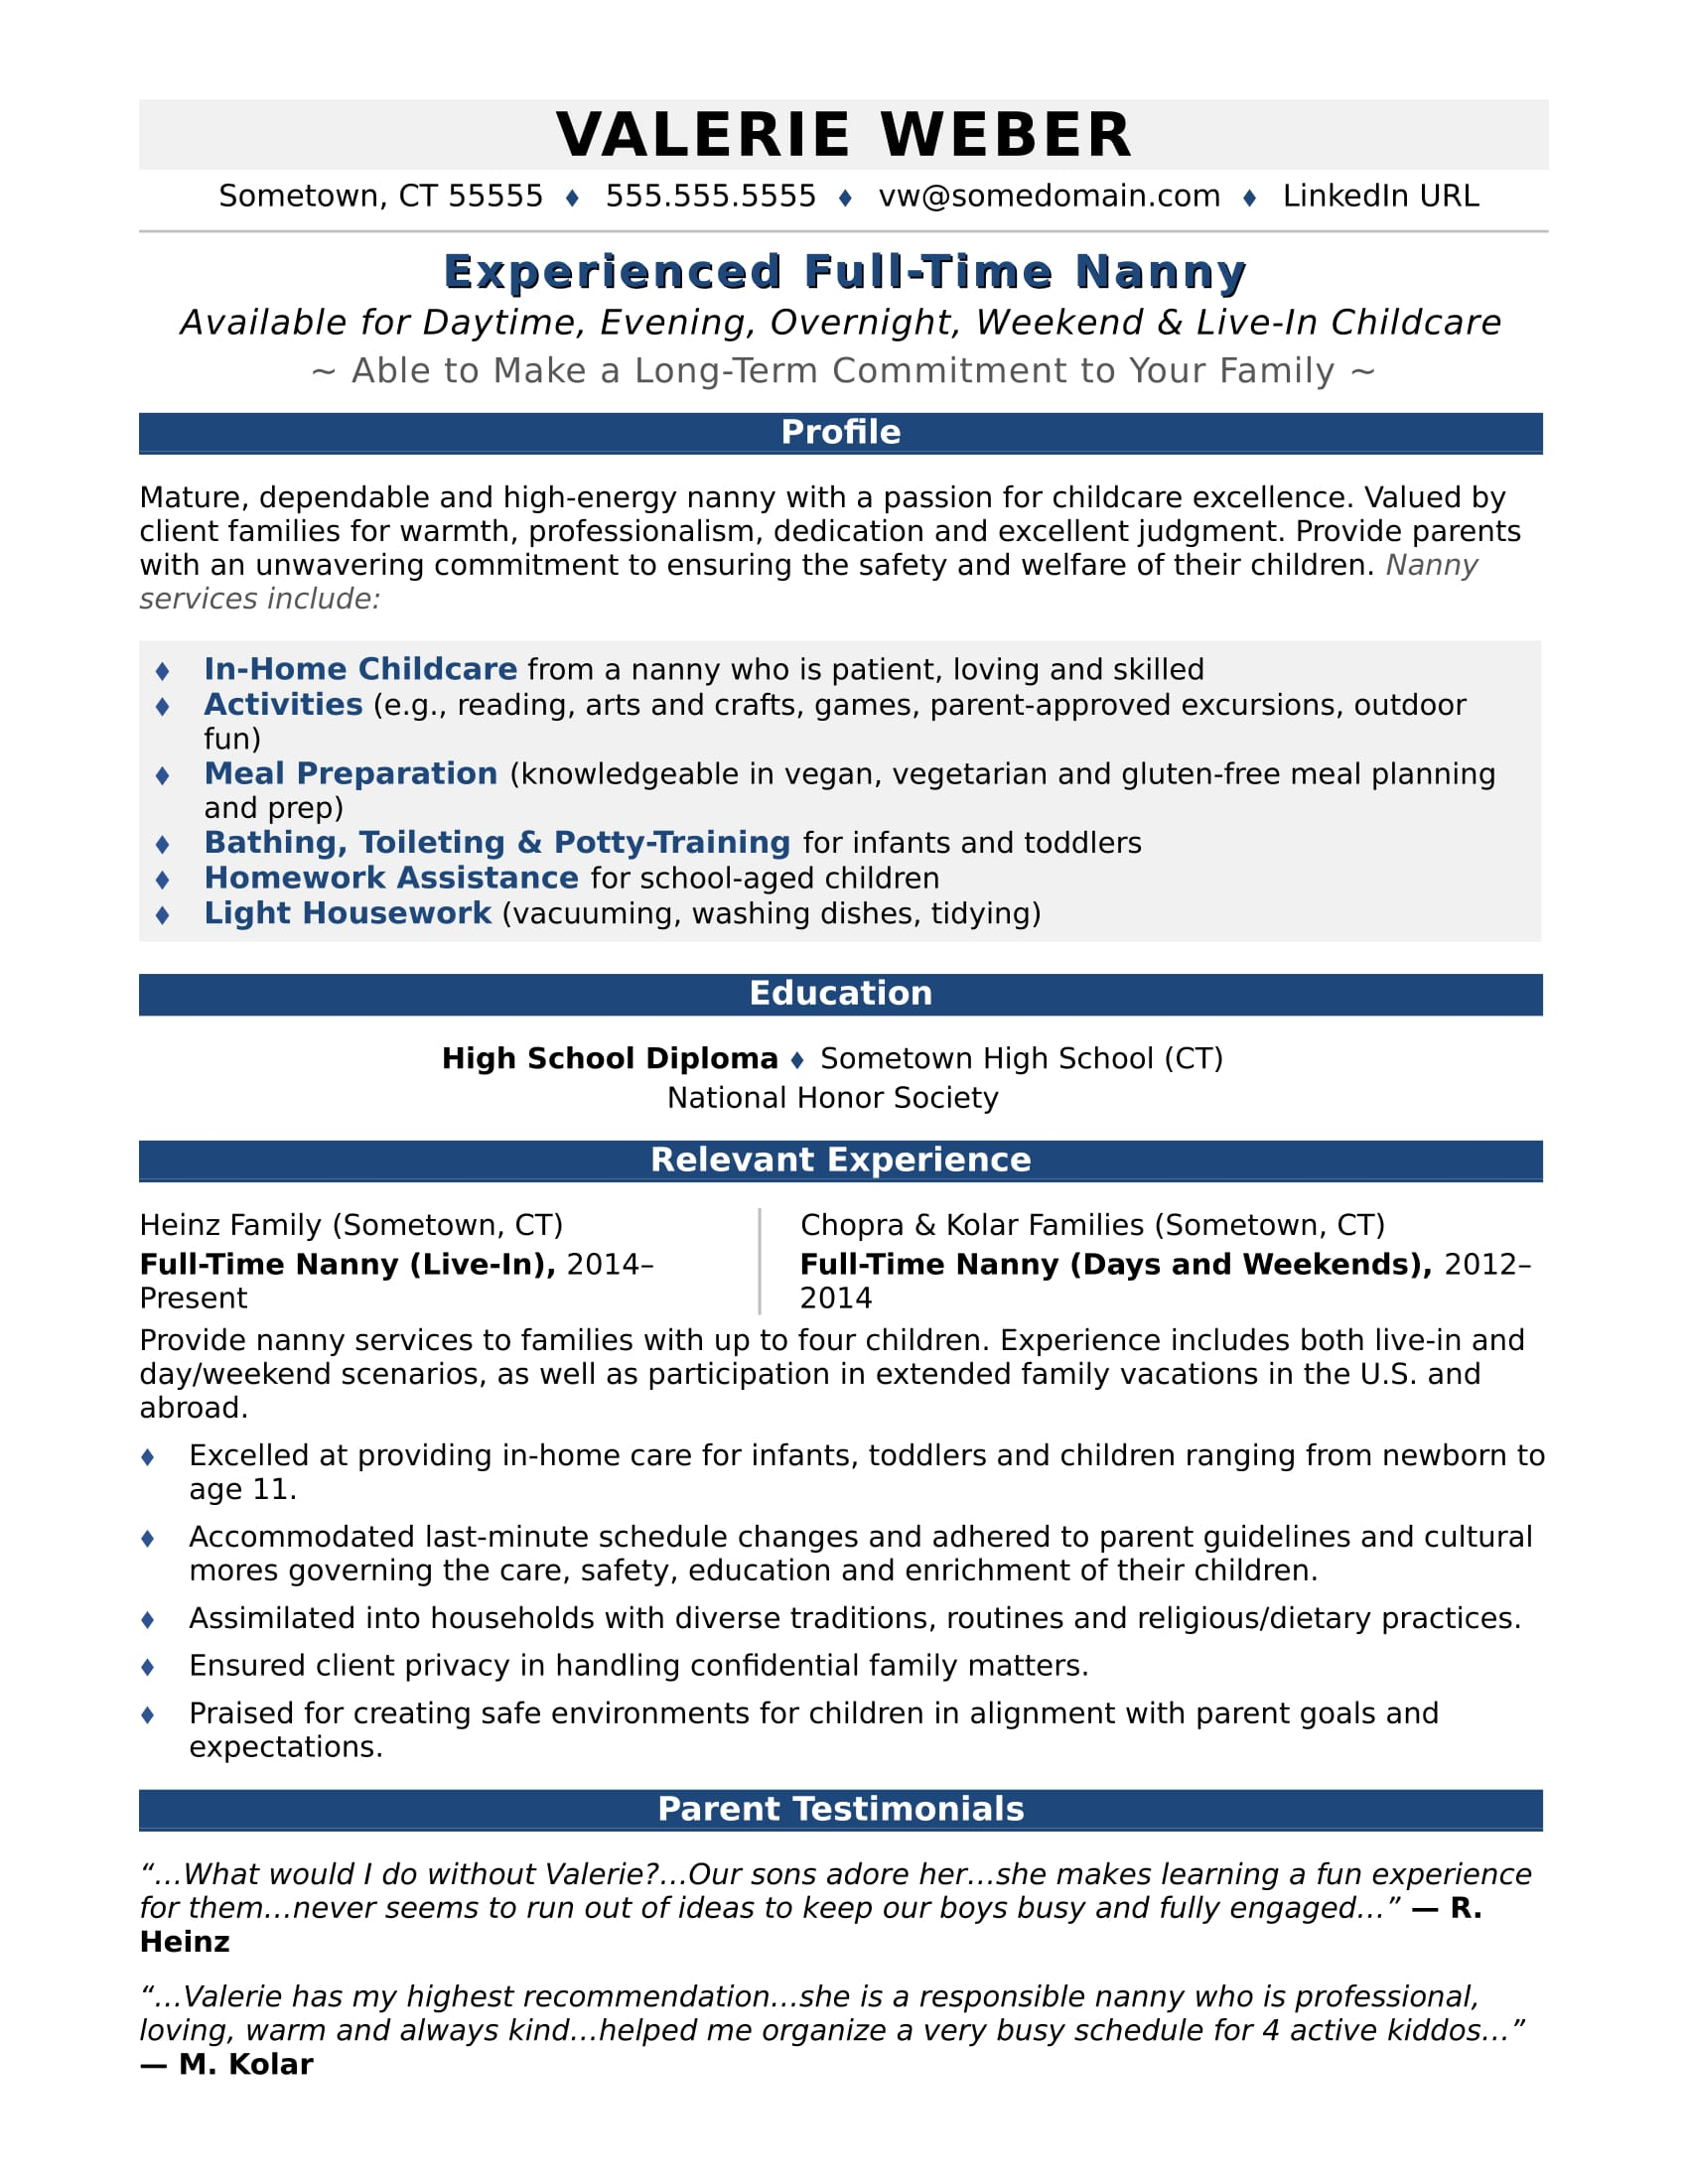 nanny resume sample - Nanny Resume Examples